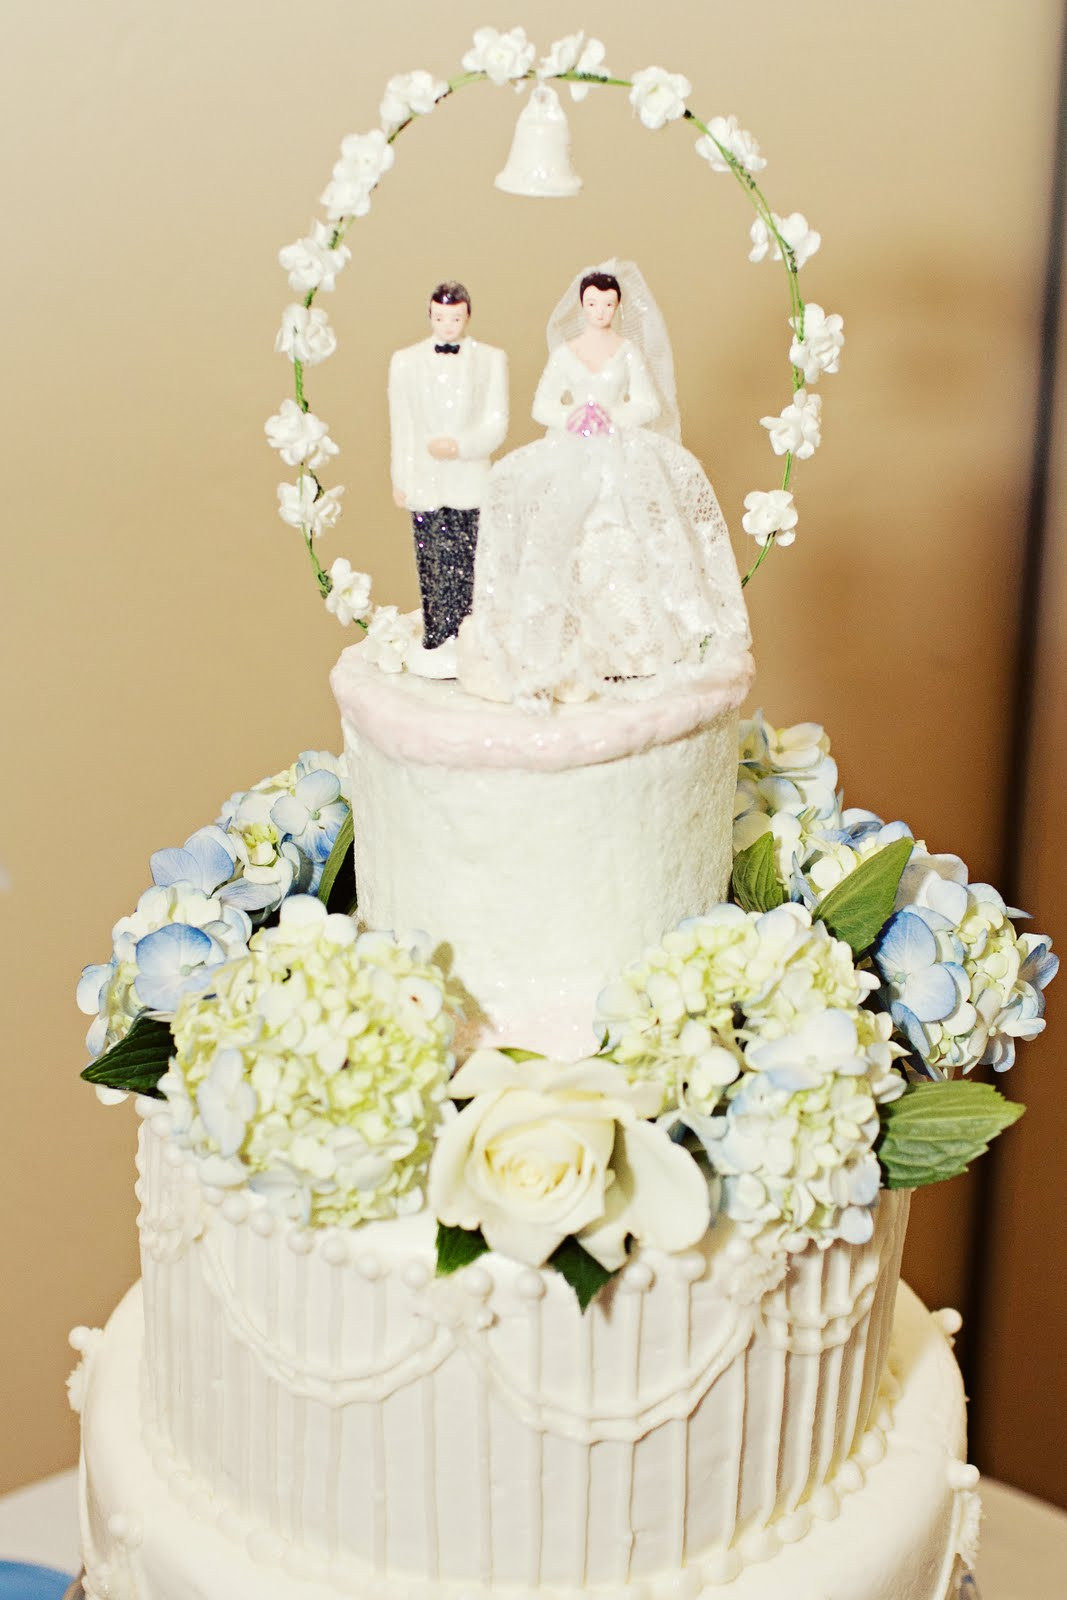 Best ideas about Shabby Chic Wedding Cake . Save or Pin The Marrying Cake Shabby Chic Wedding Cake Now.